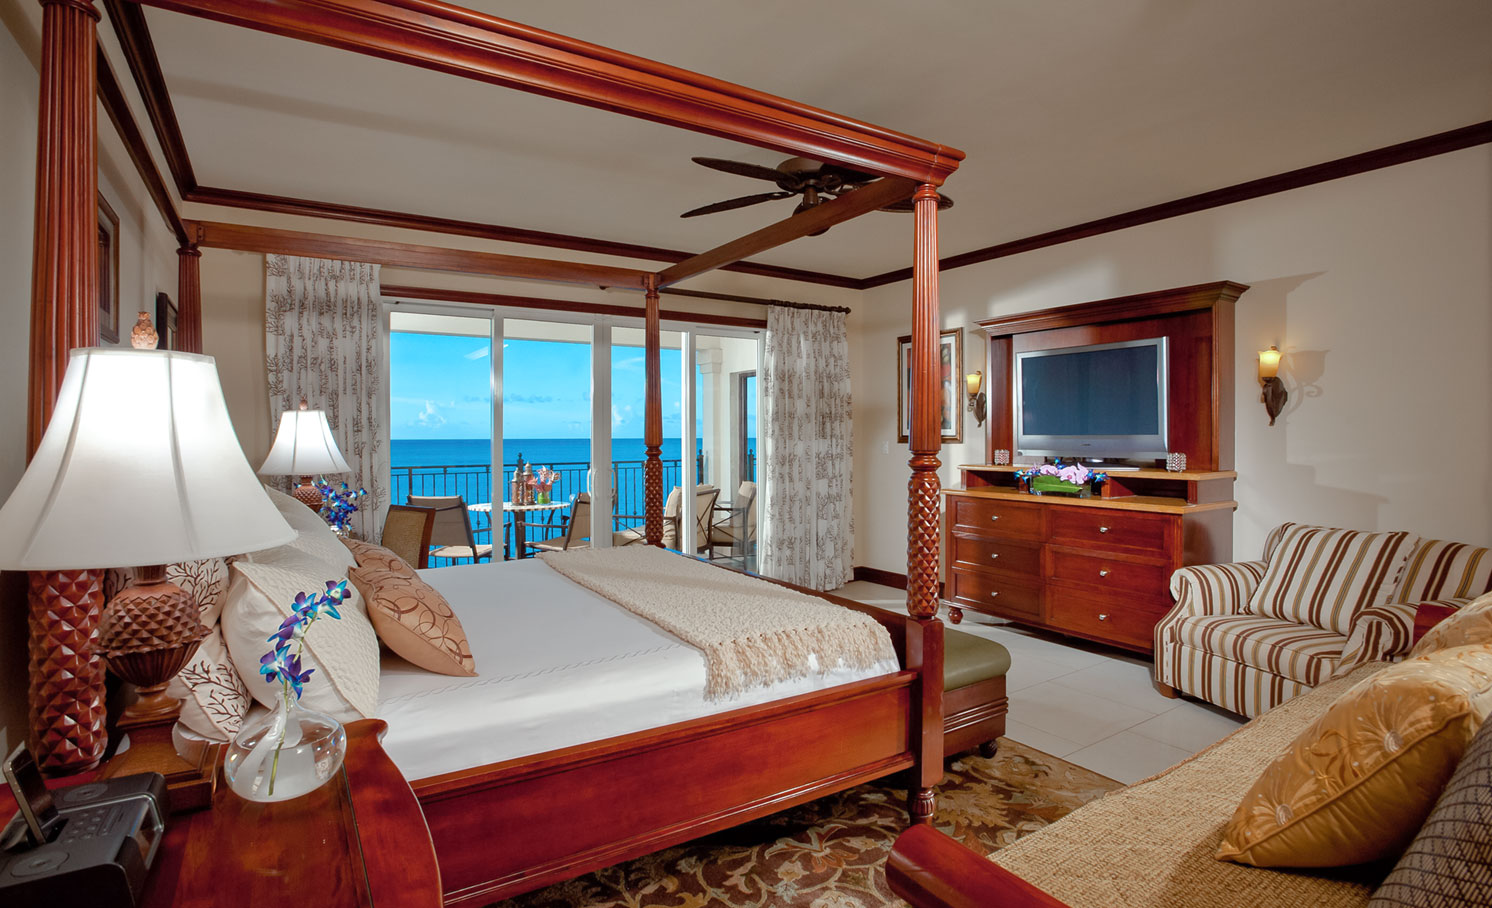 Sanibel Island Hotels: Luxury Rooms & Suites At Our All-Inclusive Resorts